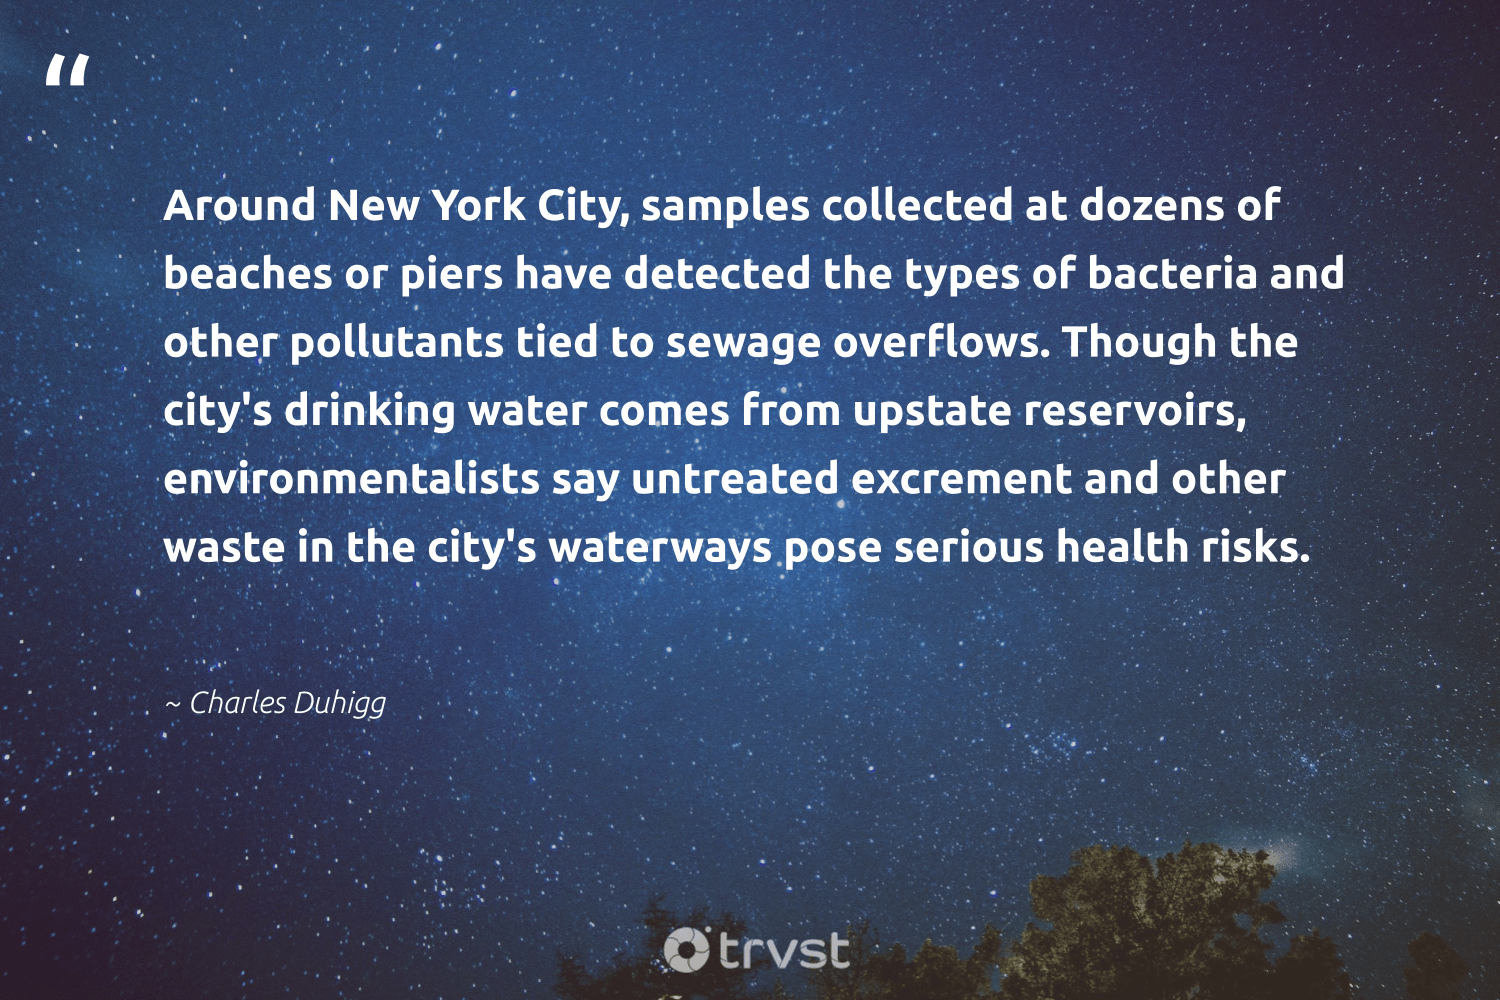 """""""Around New York City, samples collected at dozens of beaches or piers have detected the types of bacteria and other pollutants tied to sewage overflows. Though the city's drinking water comes from upstate reservoirs, environmentalists say untreated excrement and other waste in the city's waterways pose serious health risks.""""  - Charles Duhigg #trvst #quotes #ocean #waste #water #health #river #eco #volunteer #socialimpact #wildernessnation #gogreen"""